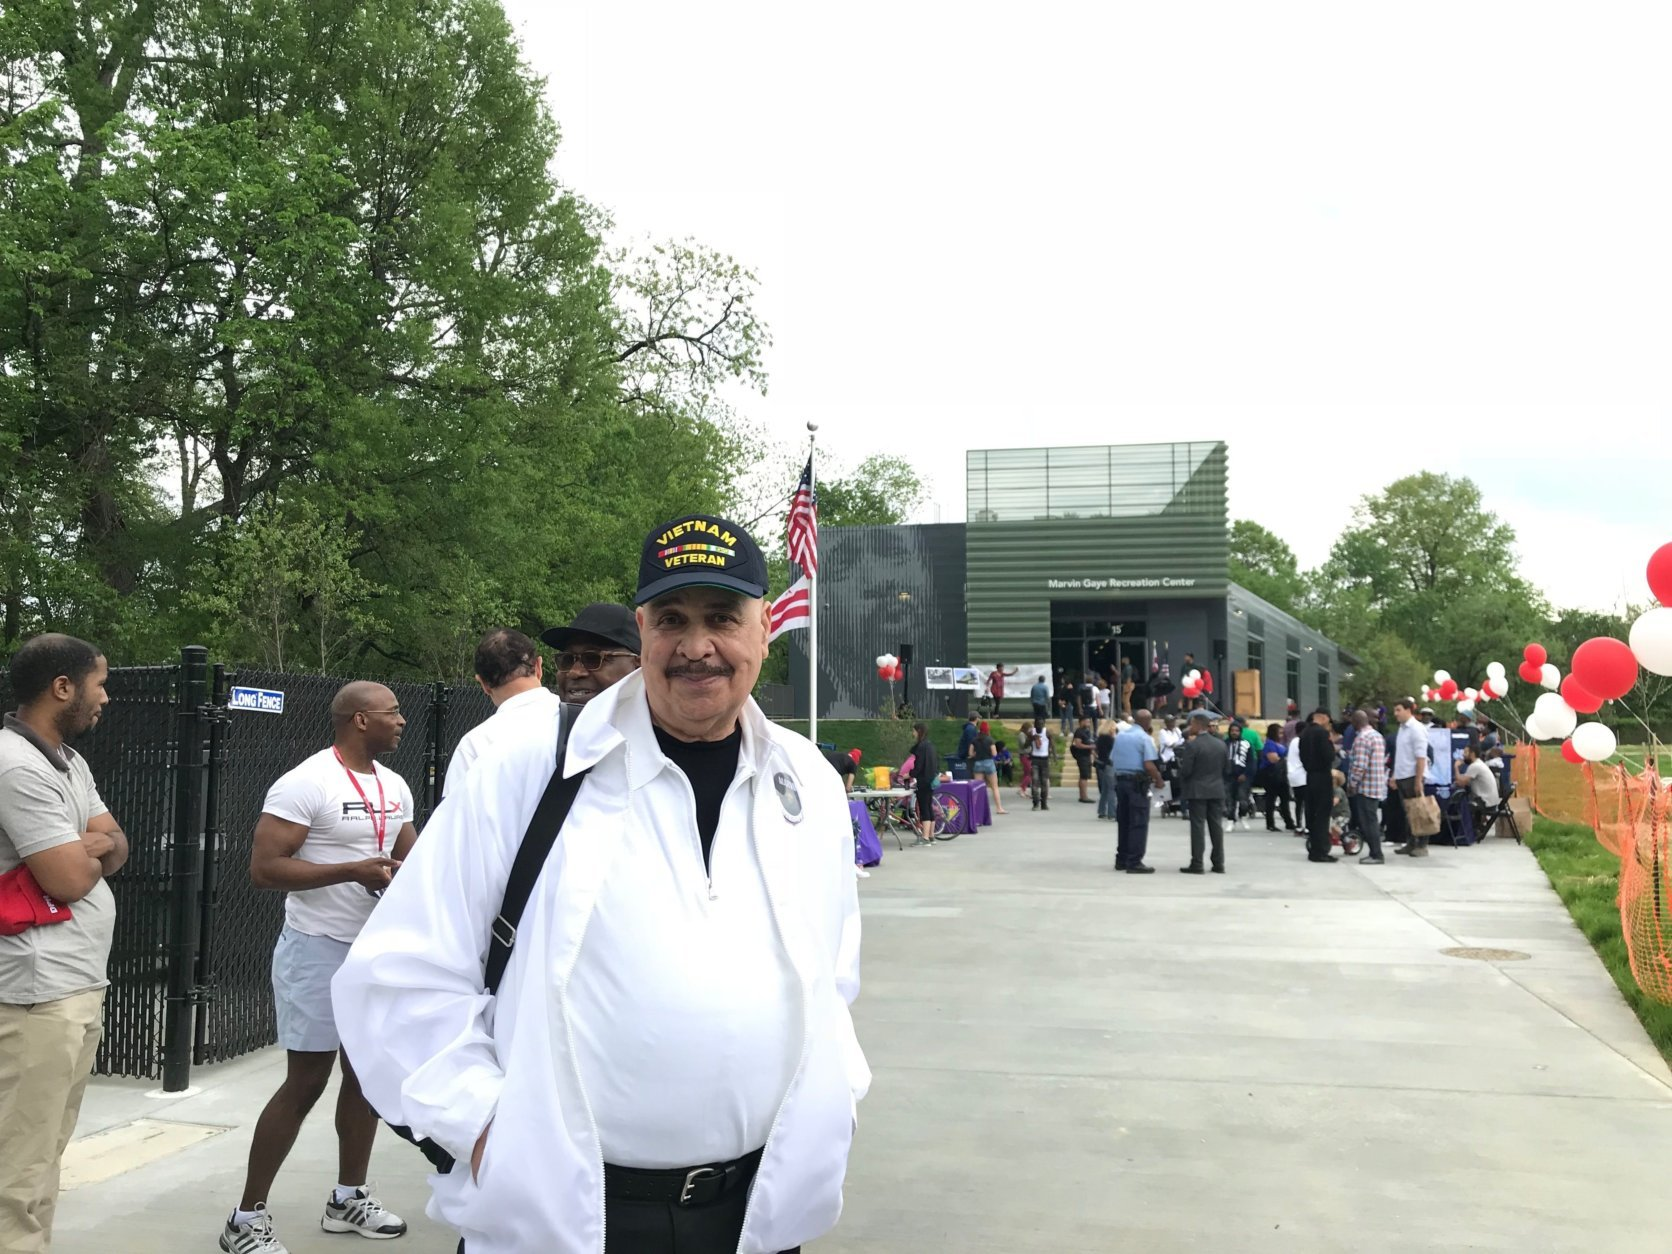 Ron Dearing attends the dedication of the Marvin Gaye Crecreation Center on Saturday, May 5, 2018. (WTOP/Dick Uliano)